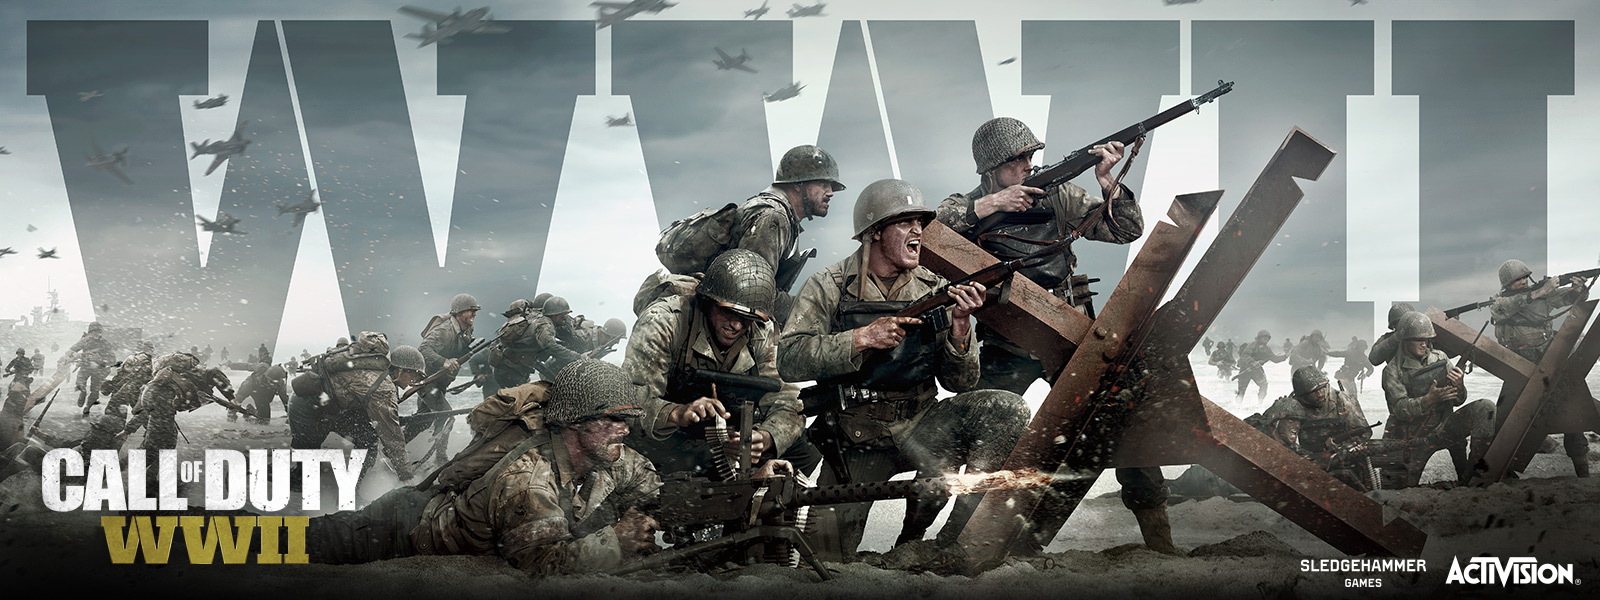 NoDVD для Call of Duty: WWII v 1.0